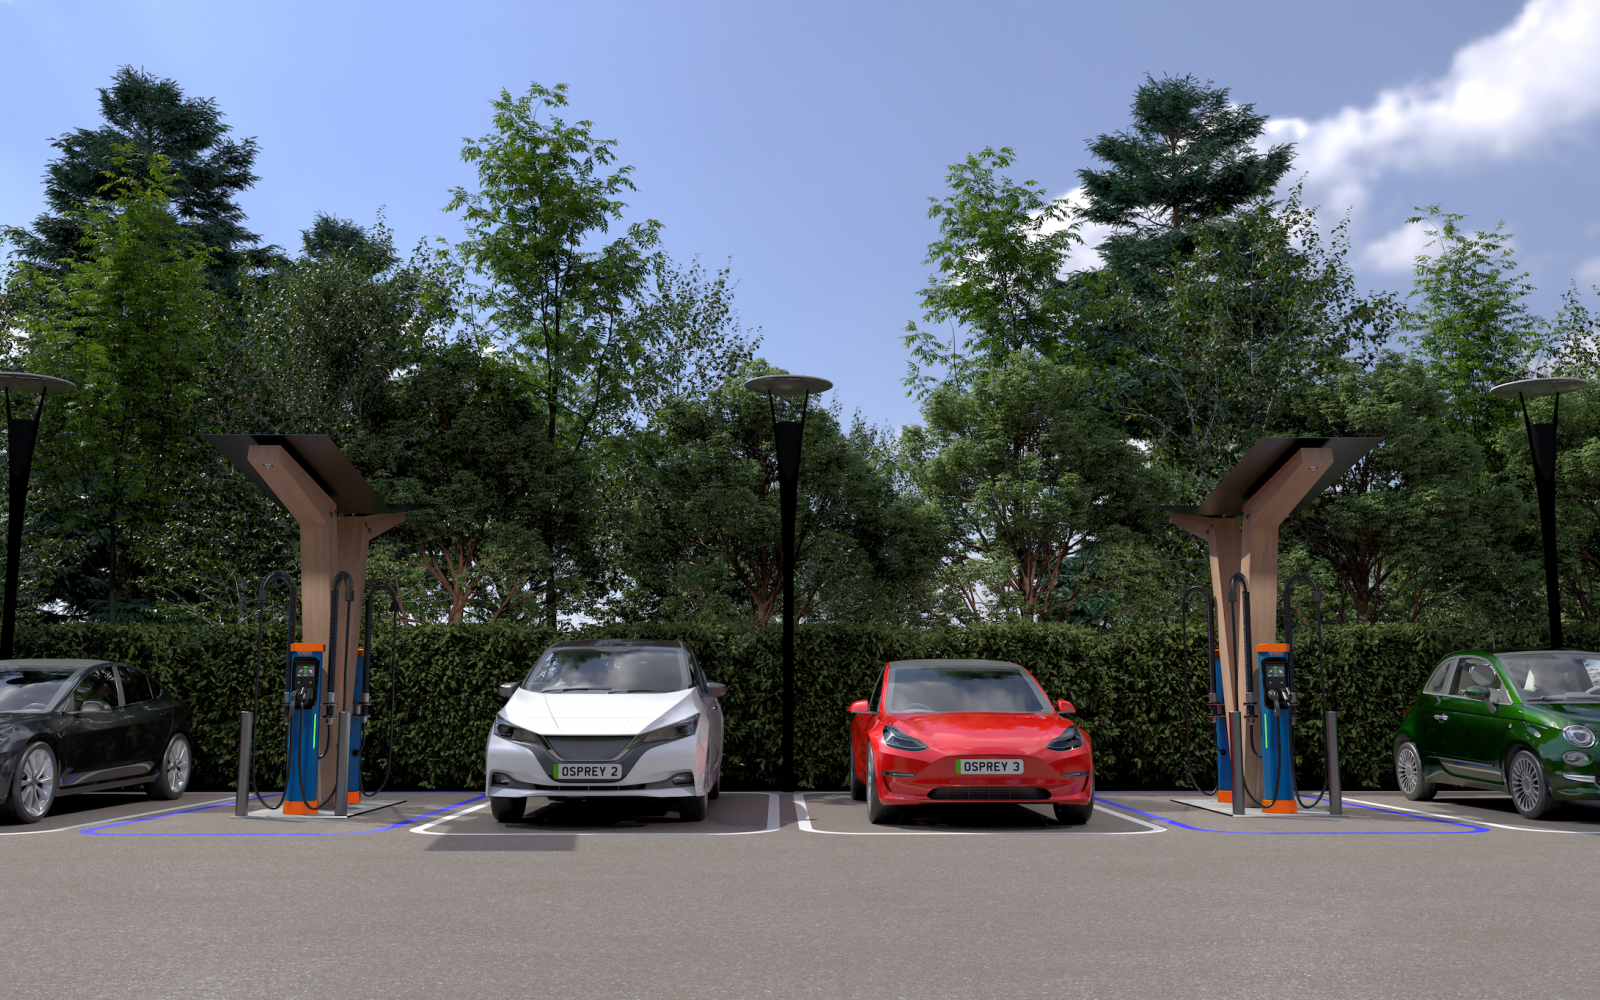 The rapid charging hubs will be rolled out over the next four years. Image: Osprey